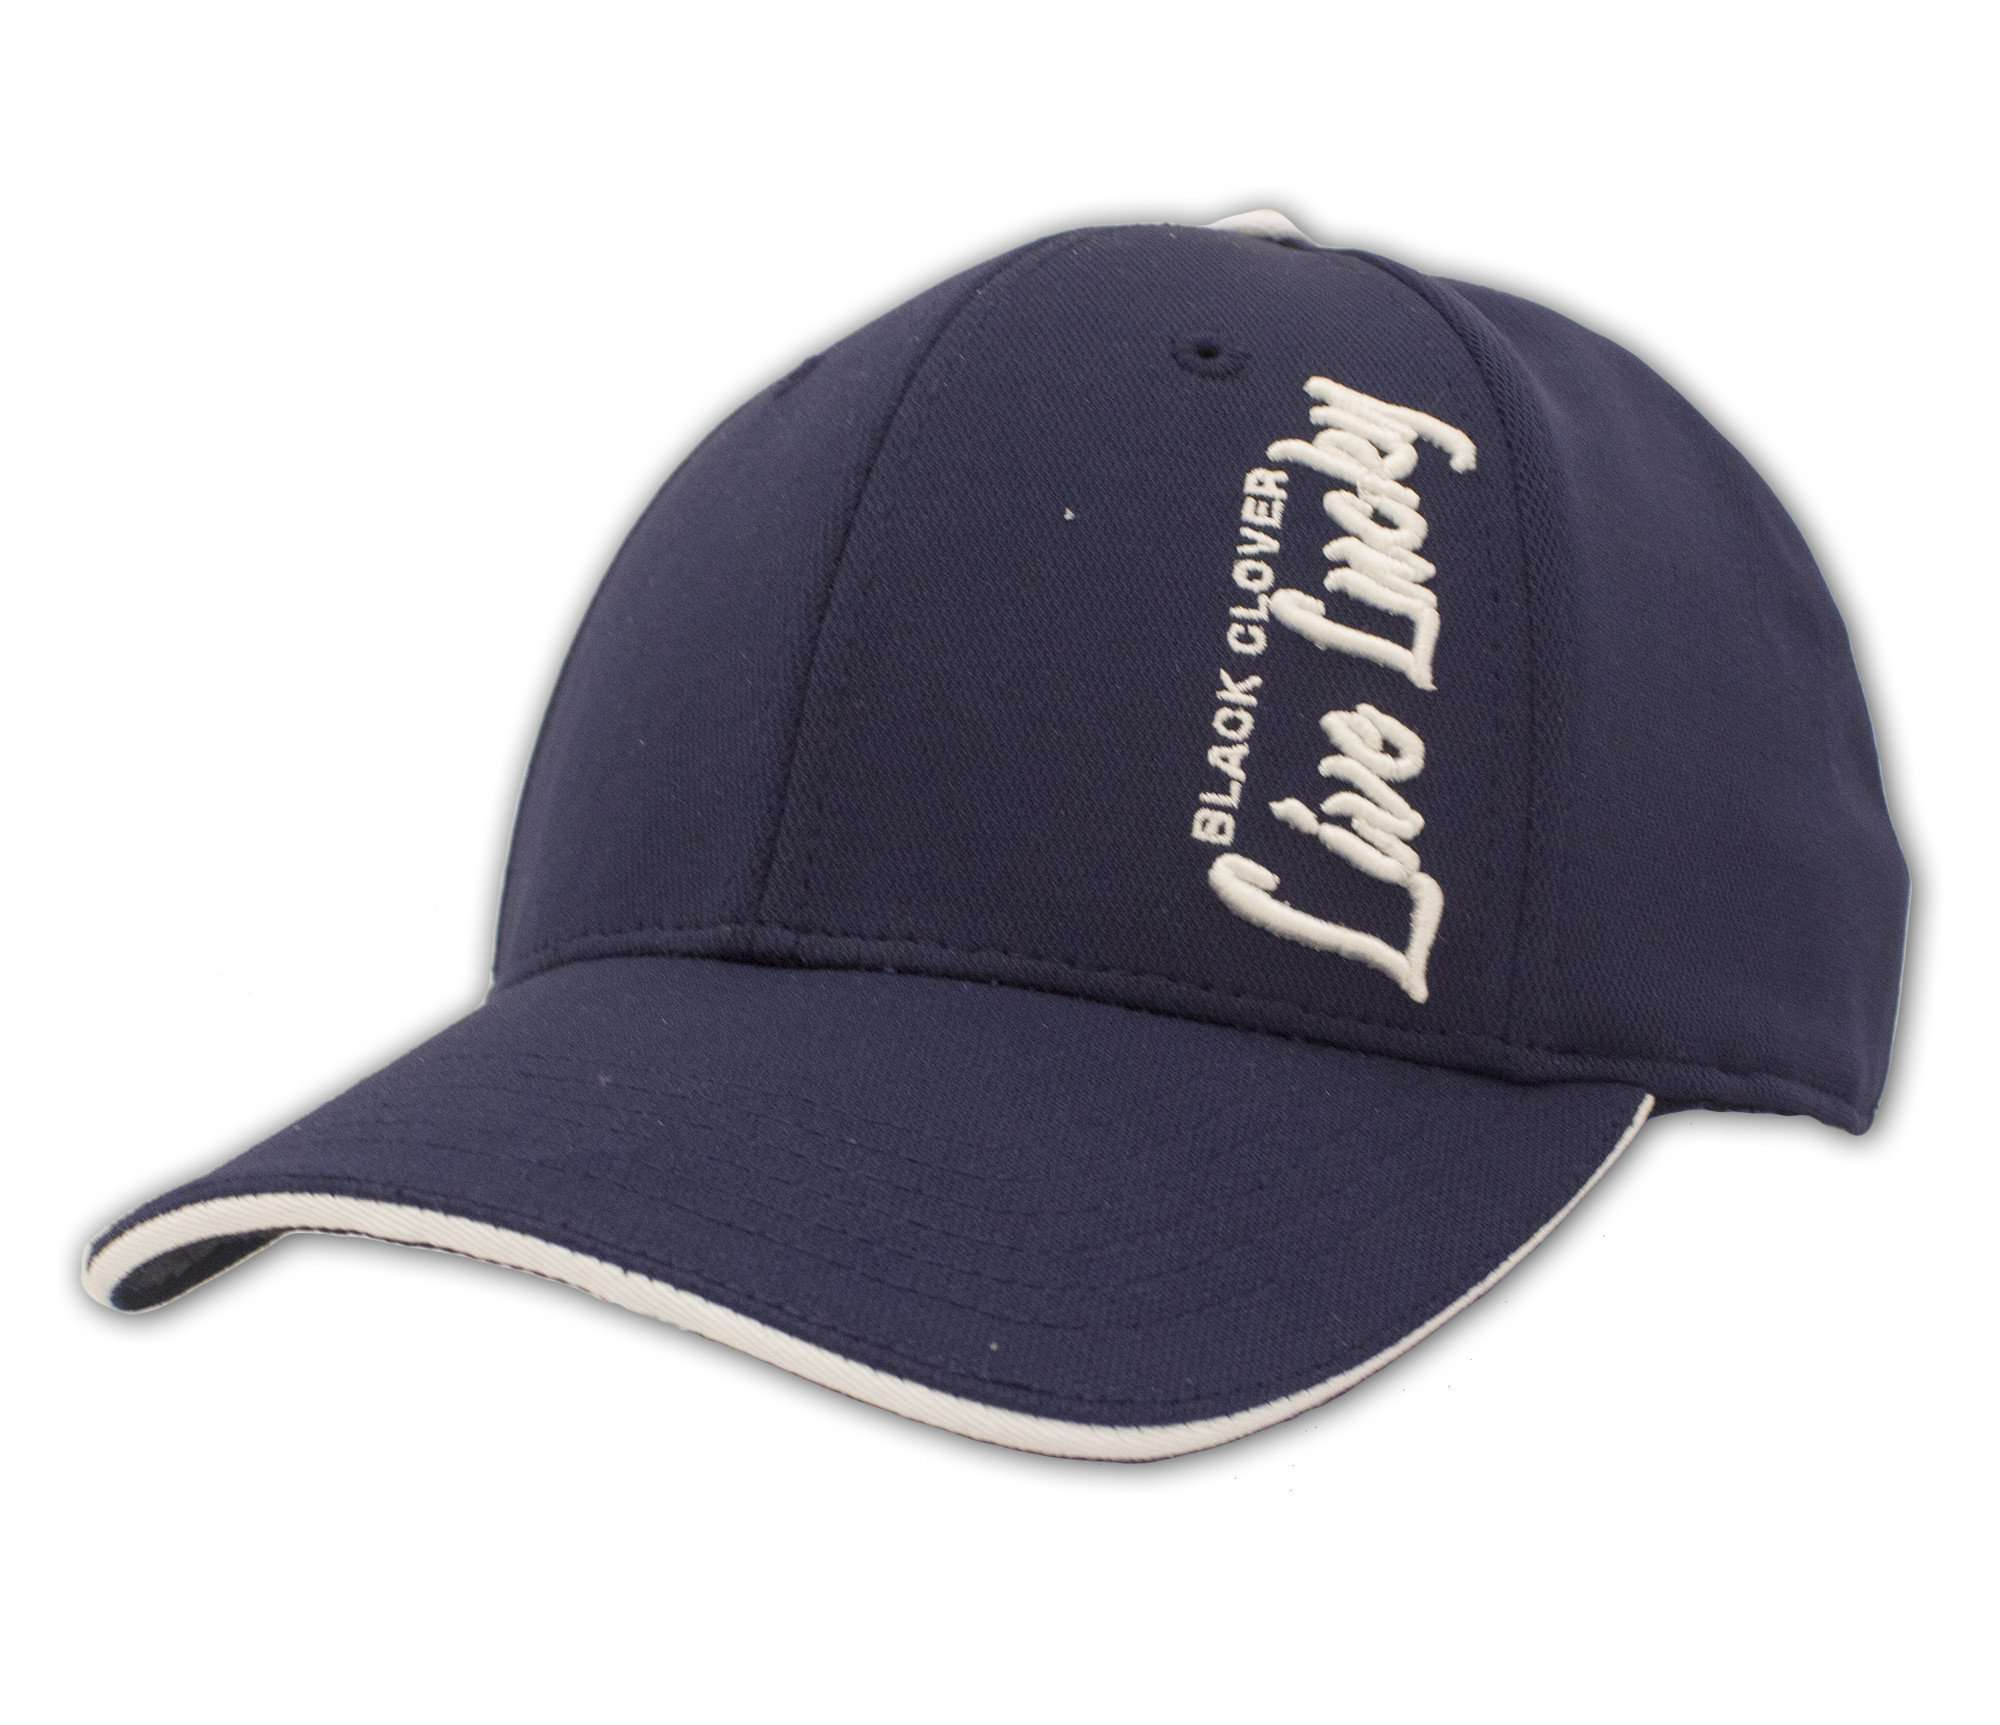 Black Clover Navy and White Baseball Hat front